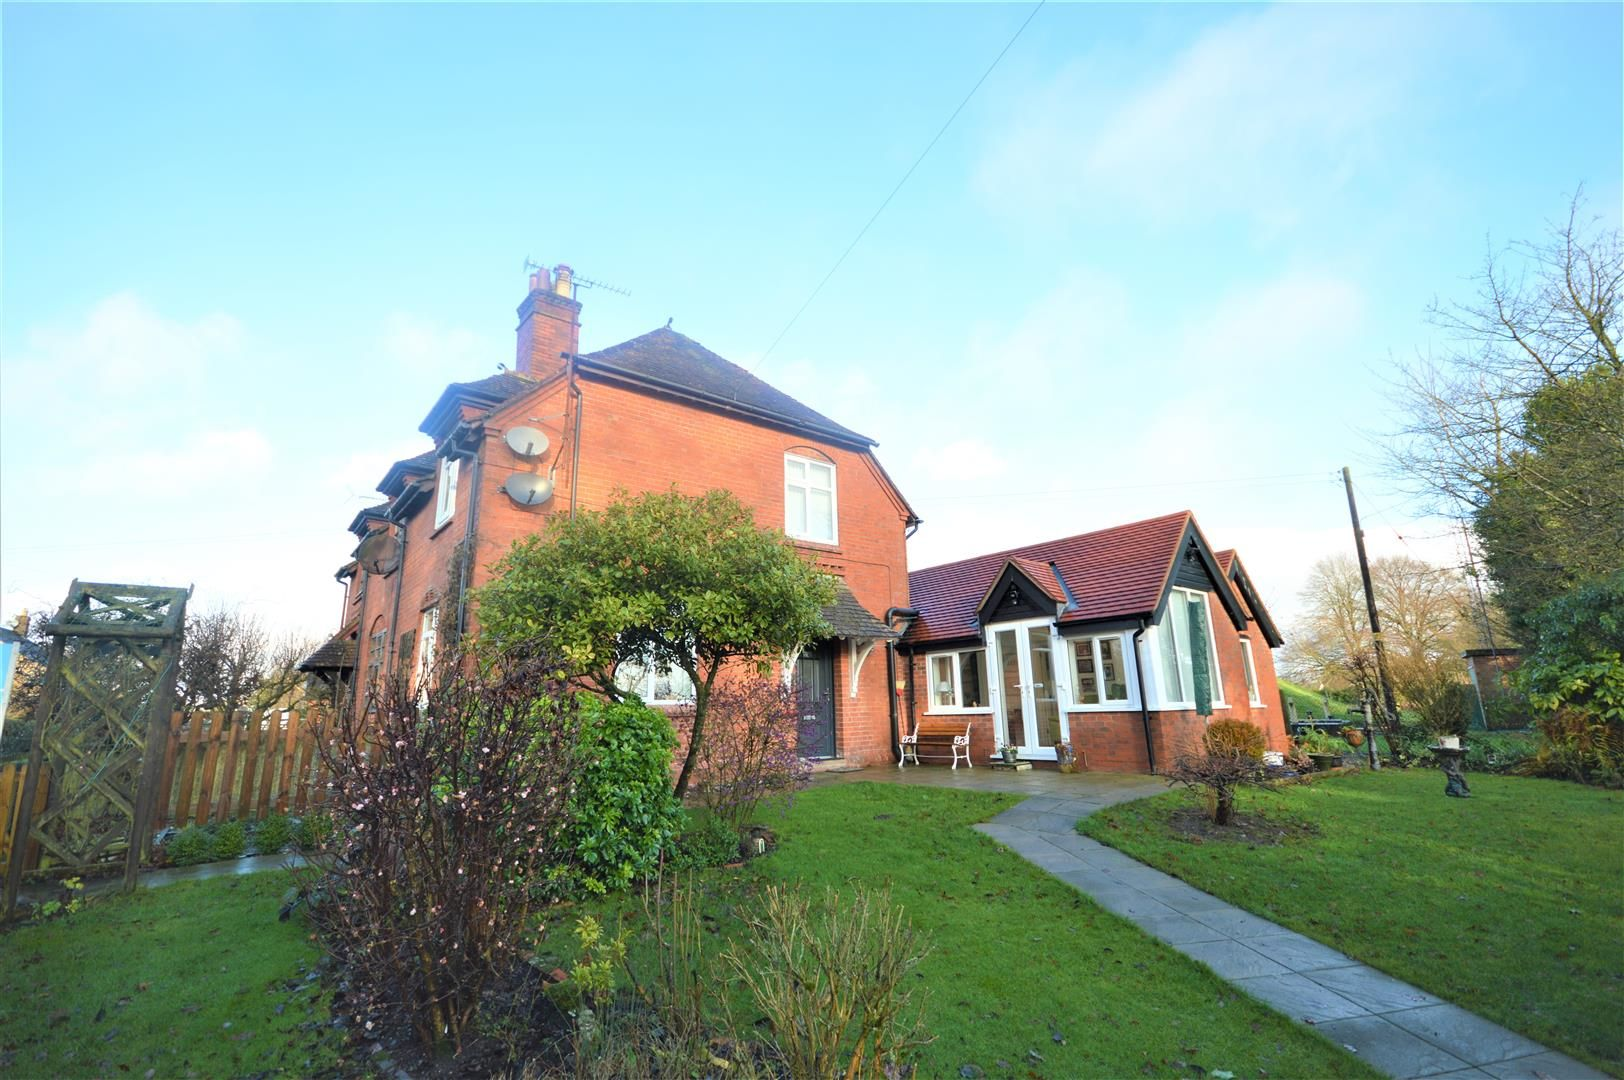 4 bed semi-detached for sale in Leysters, HR6